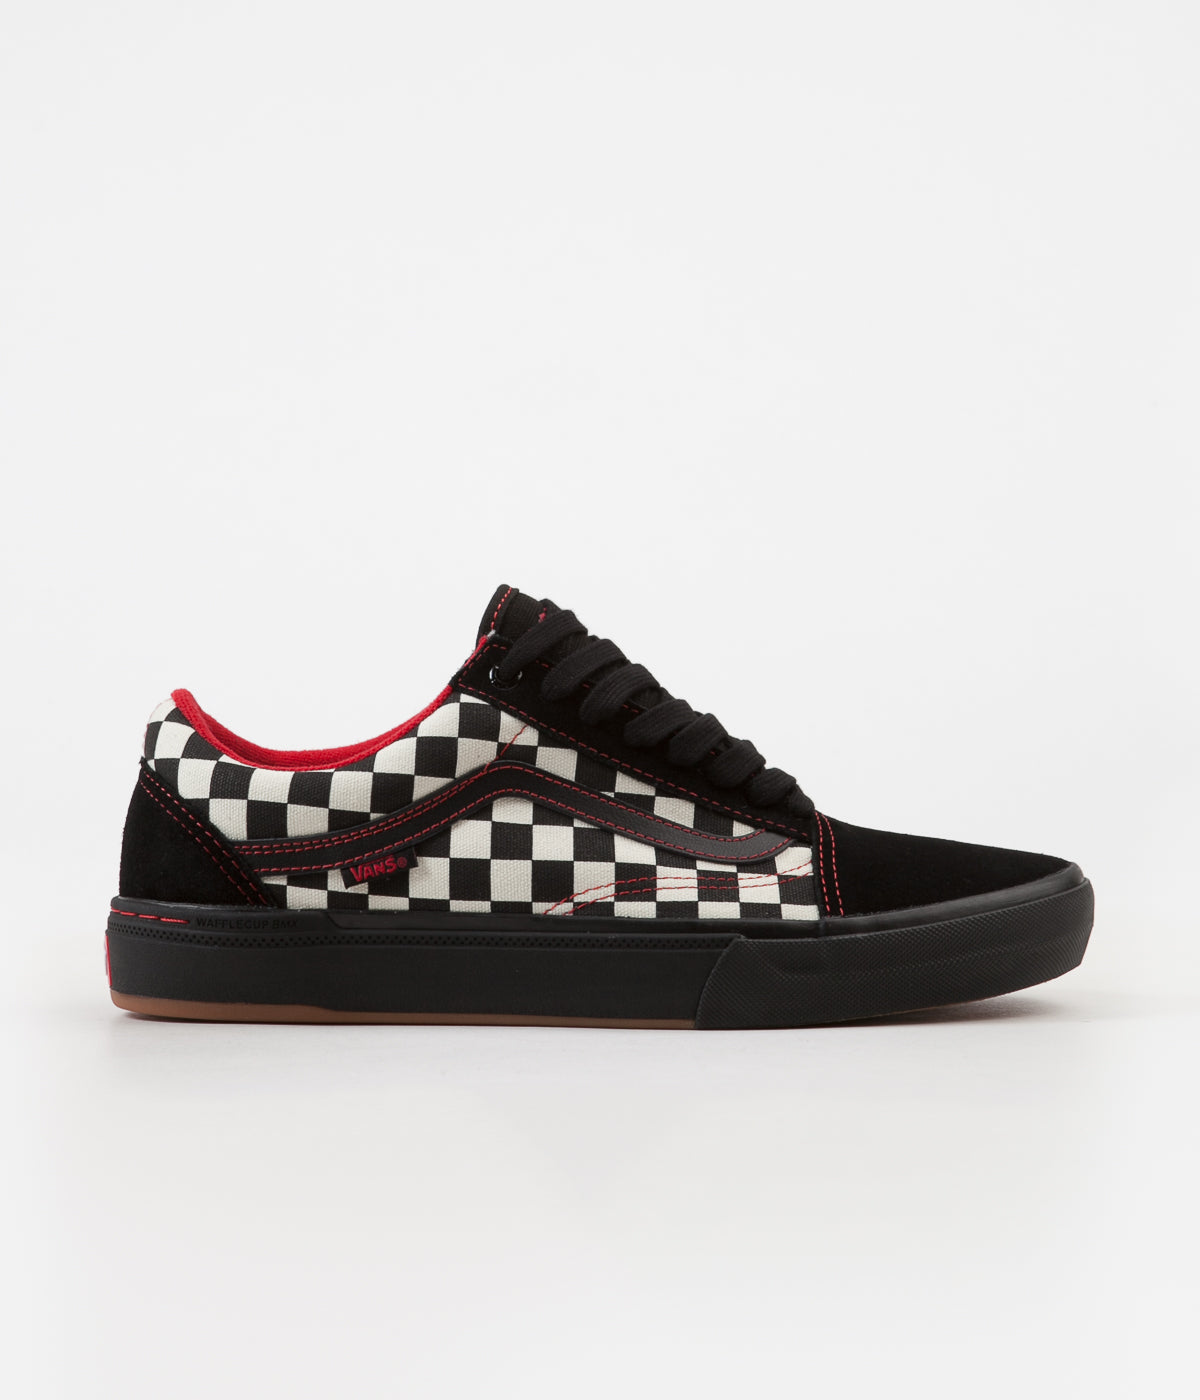 d7810088fc Vans Old Skool Pro BMX Shoes - (Kevin Peraza) Black   Checkerboard ...